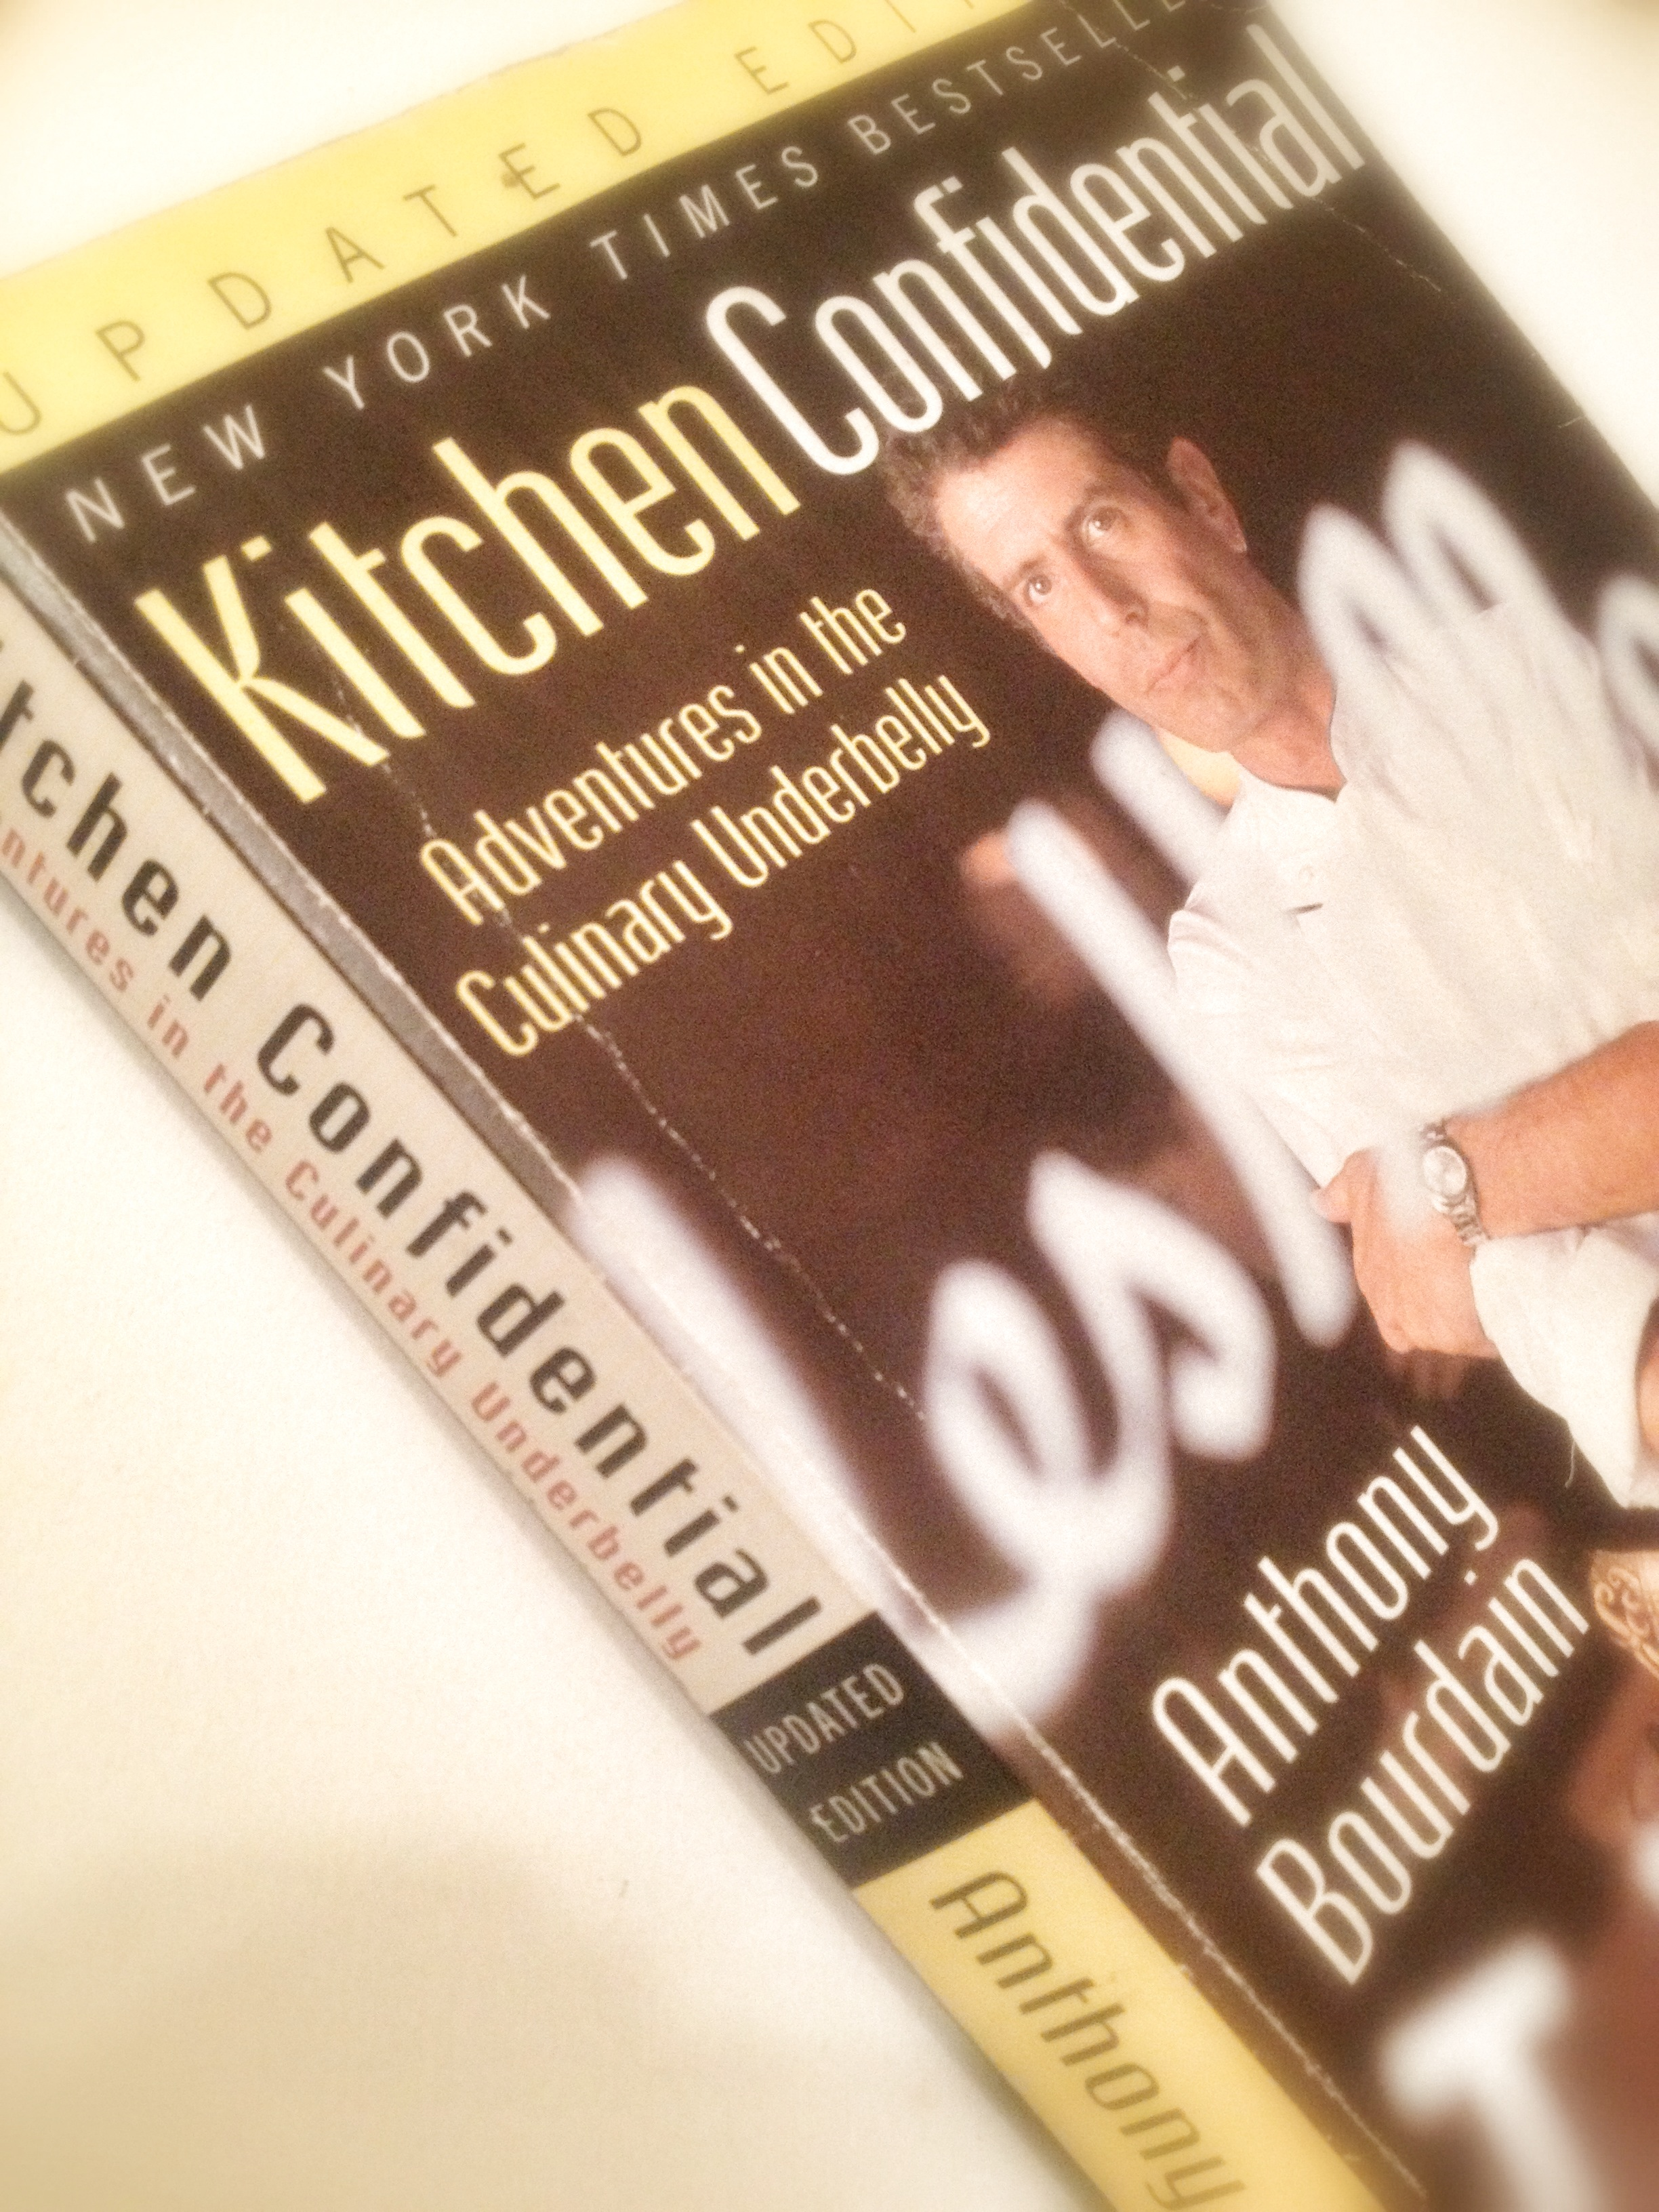 East bay dish cook book club kitchen confidential for Kitchen confidential